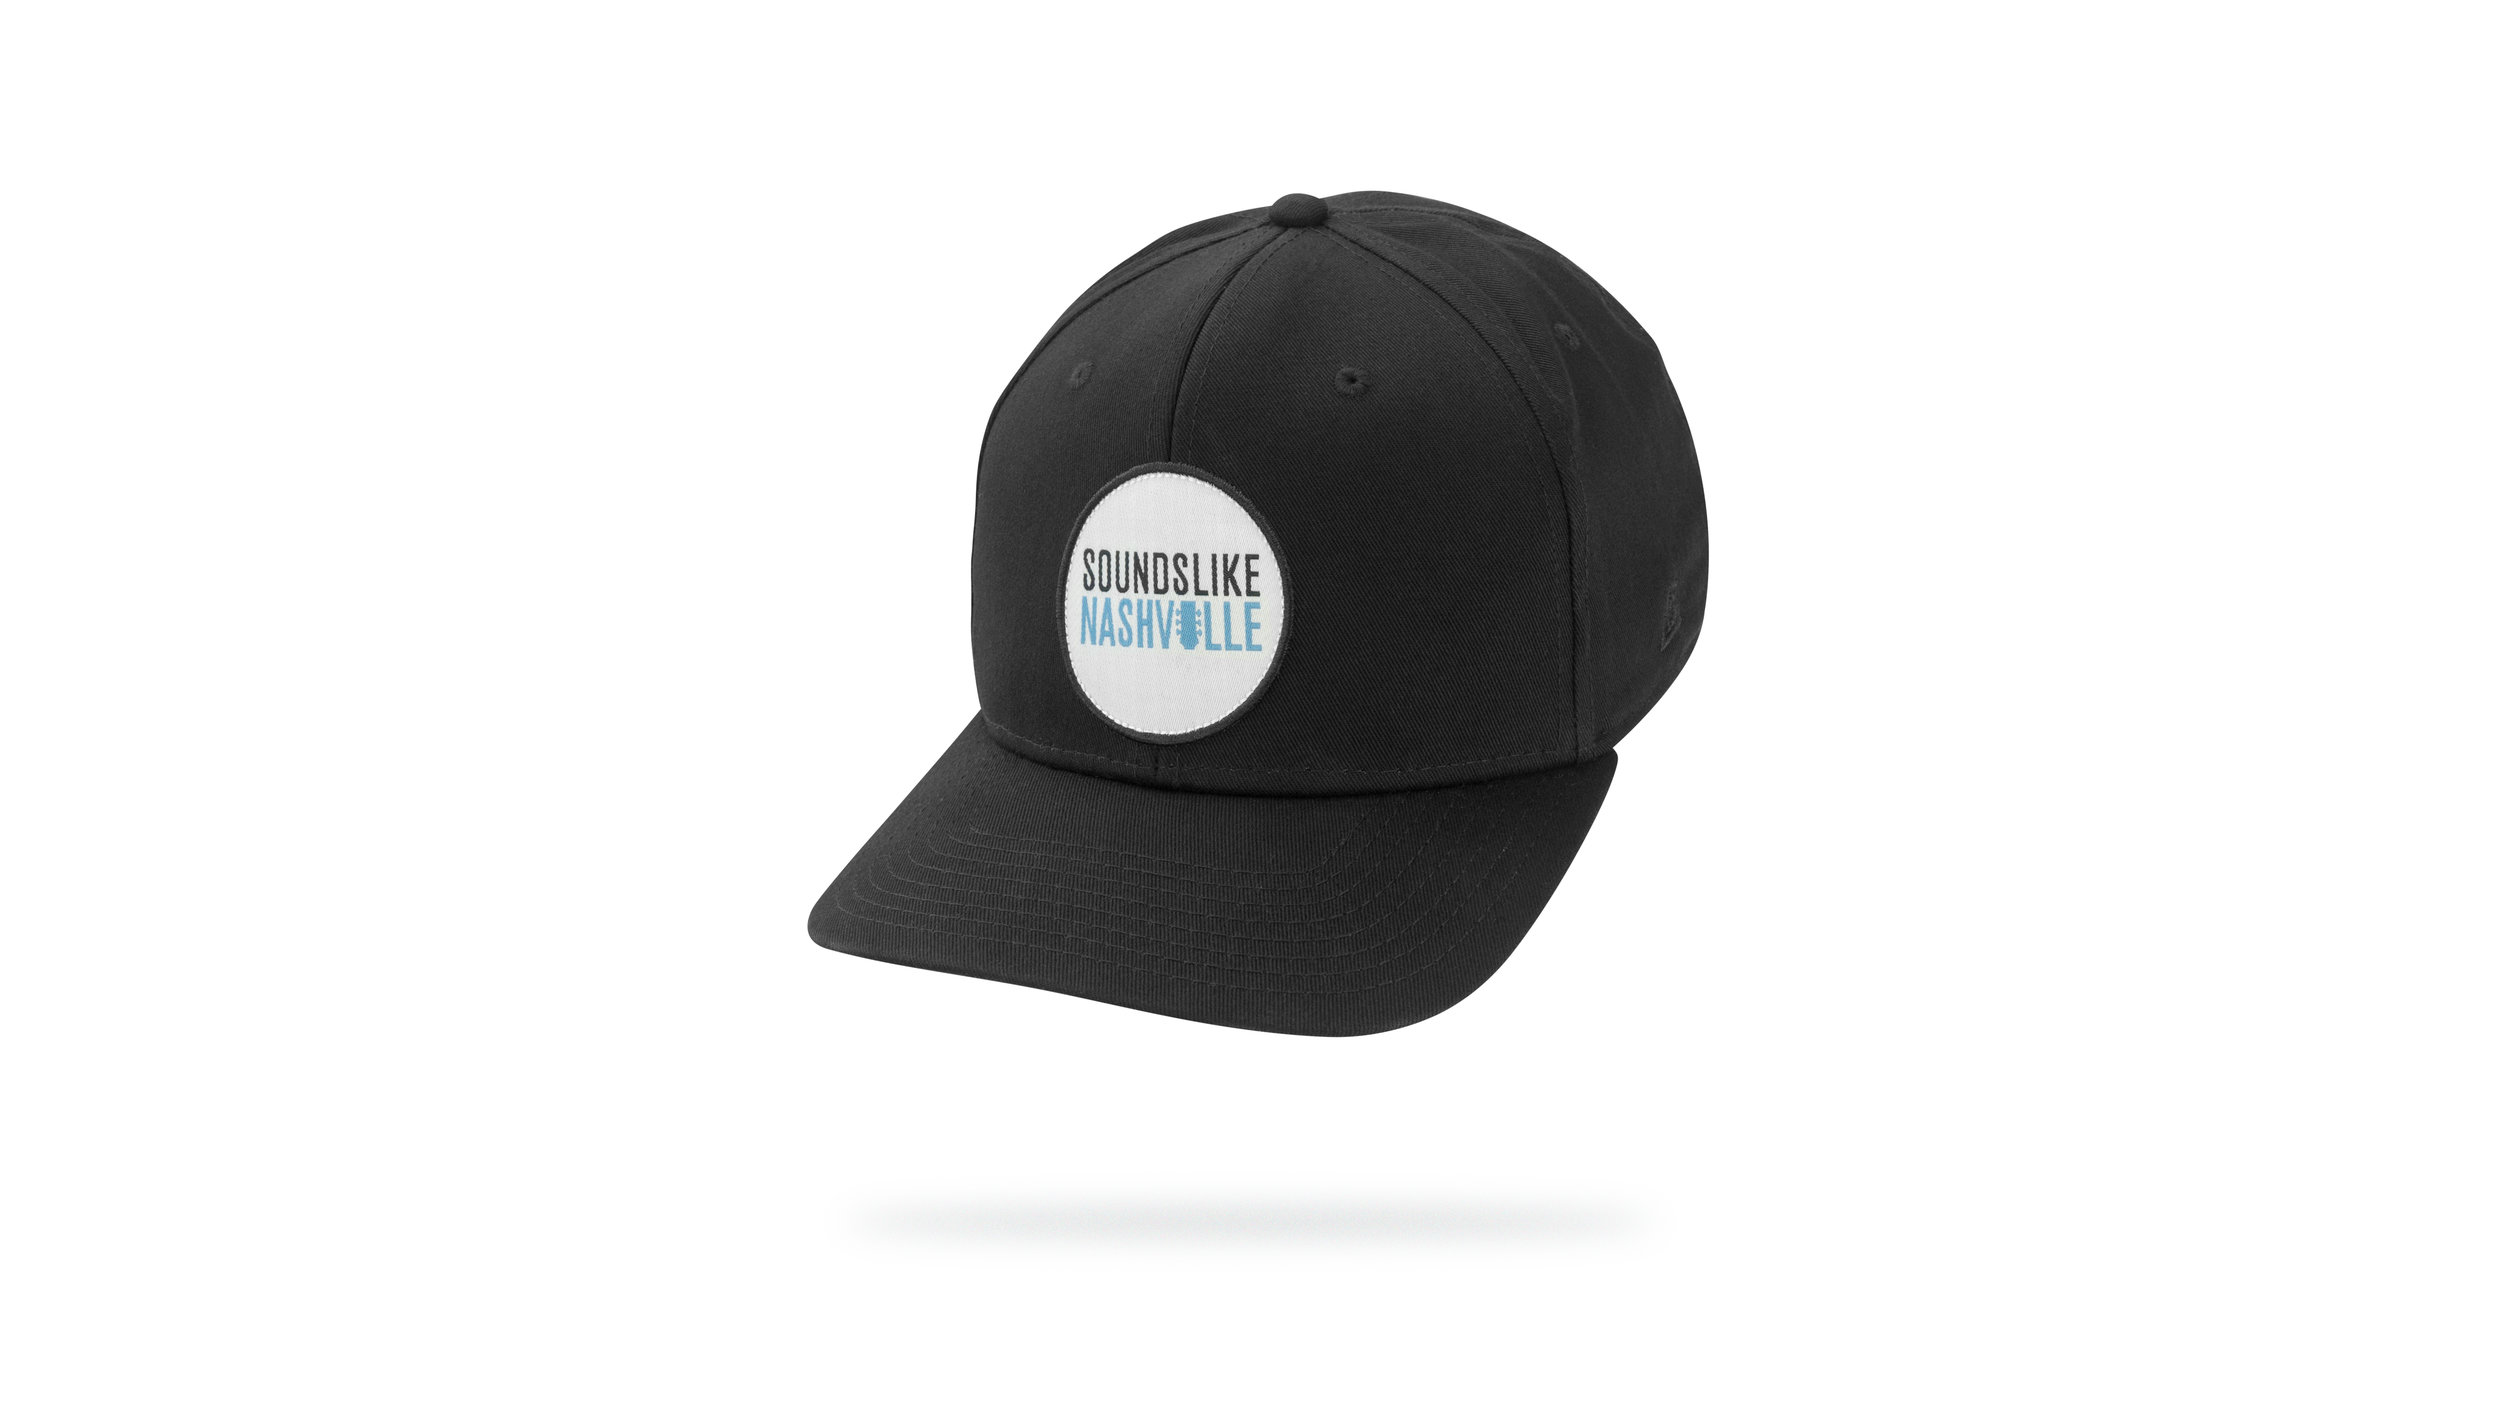 Featured Hat: STYLE II - Classic Twill Cap w/ Versa Visor & Woven Label Patch Applique